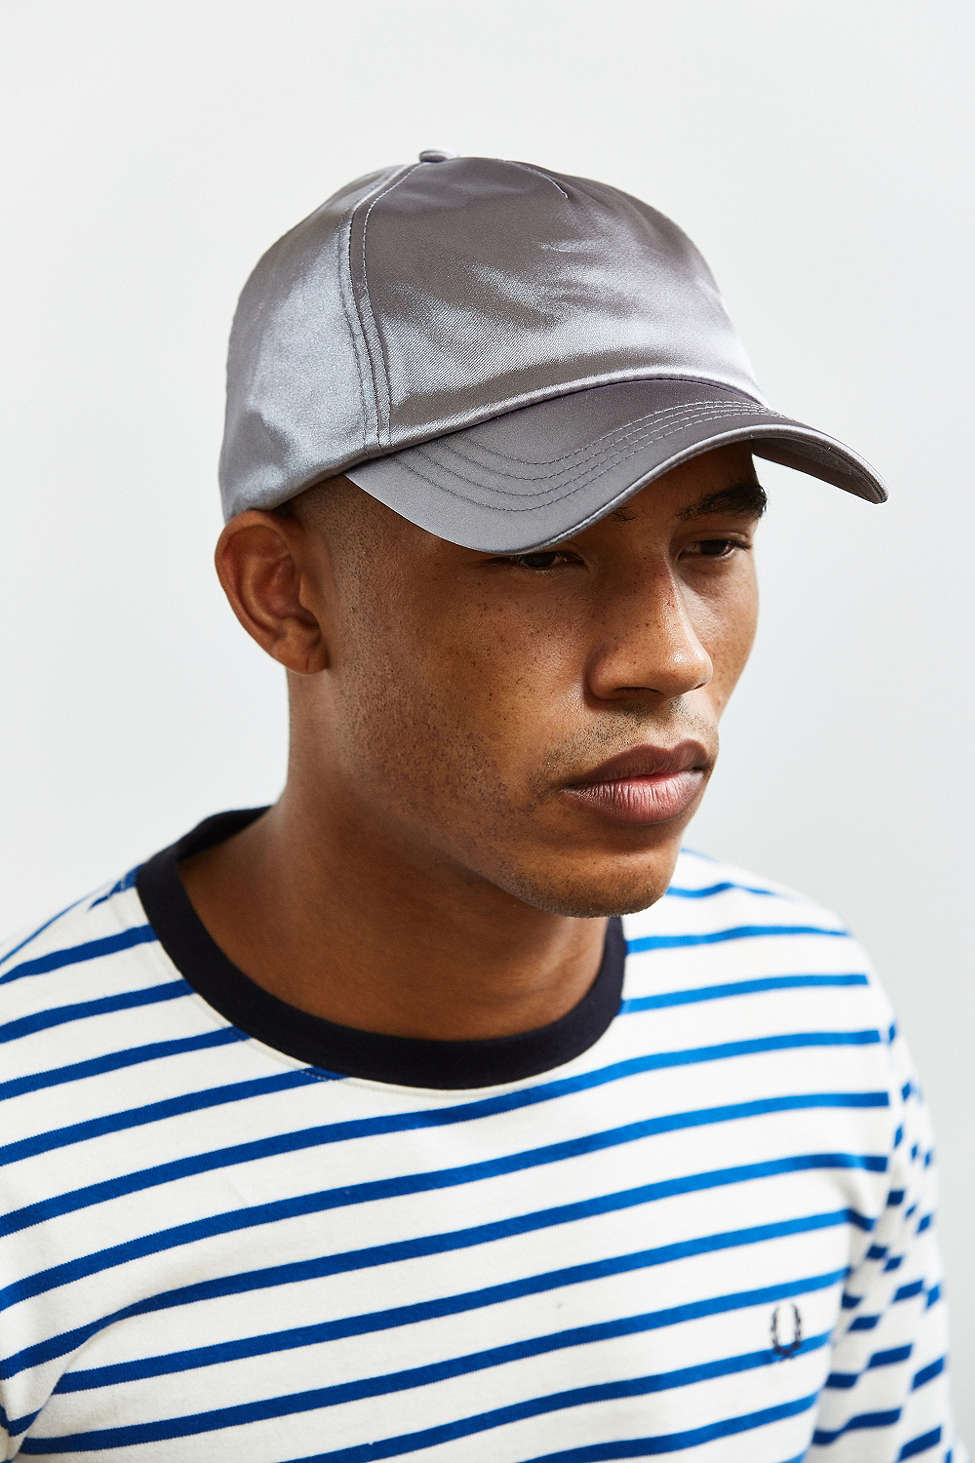 Satin cap sold at Urban Outfitters (Image via  Urban Outfitters )